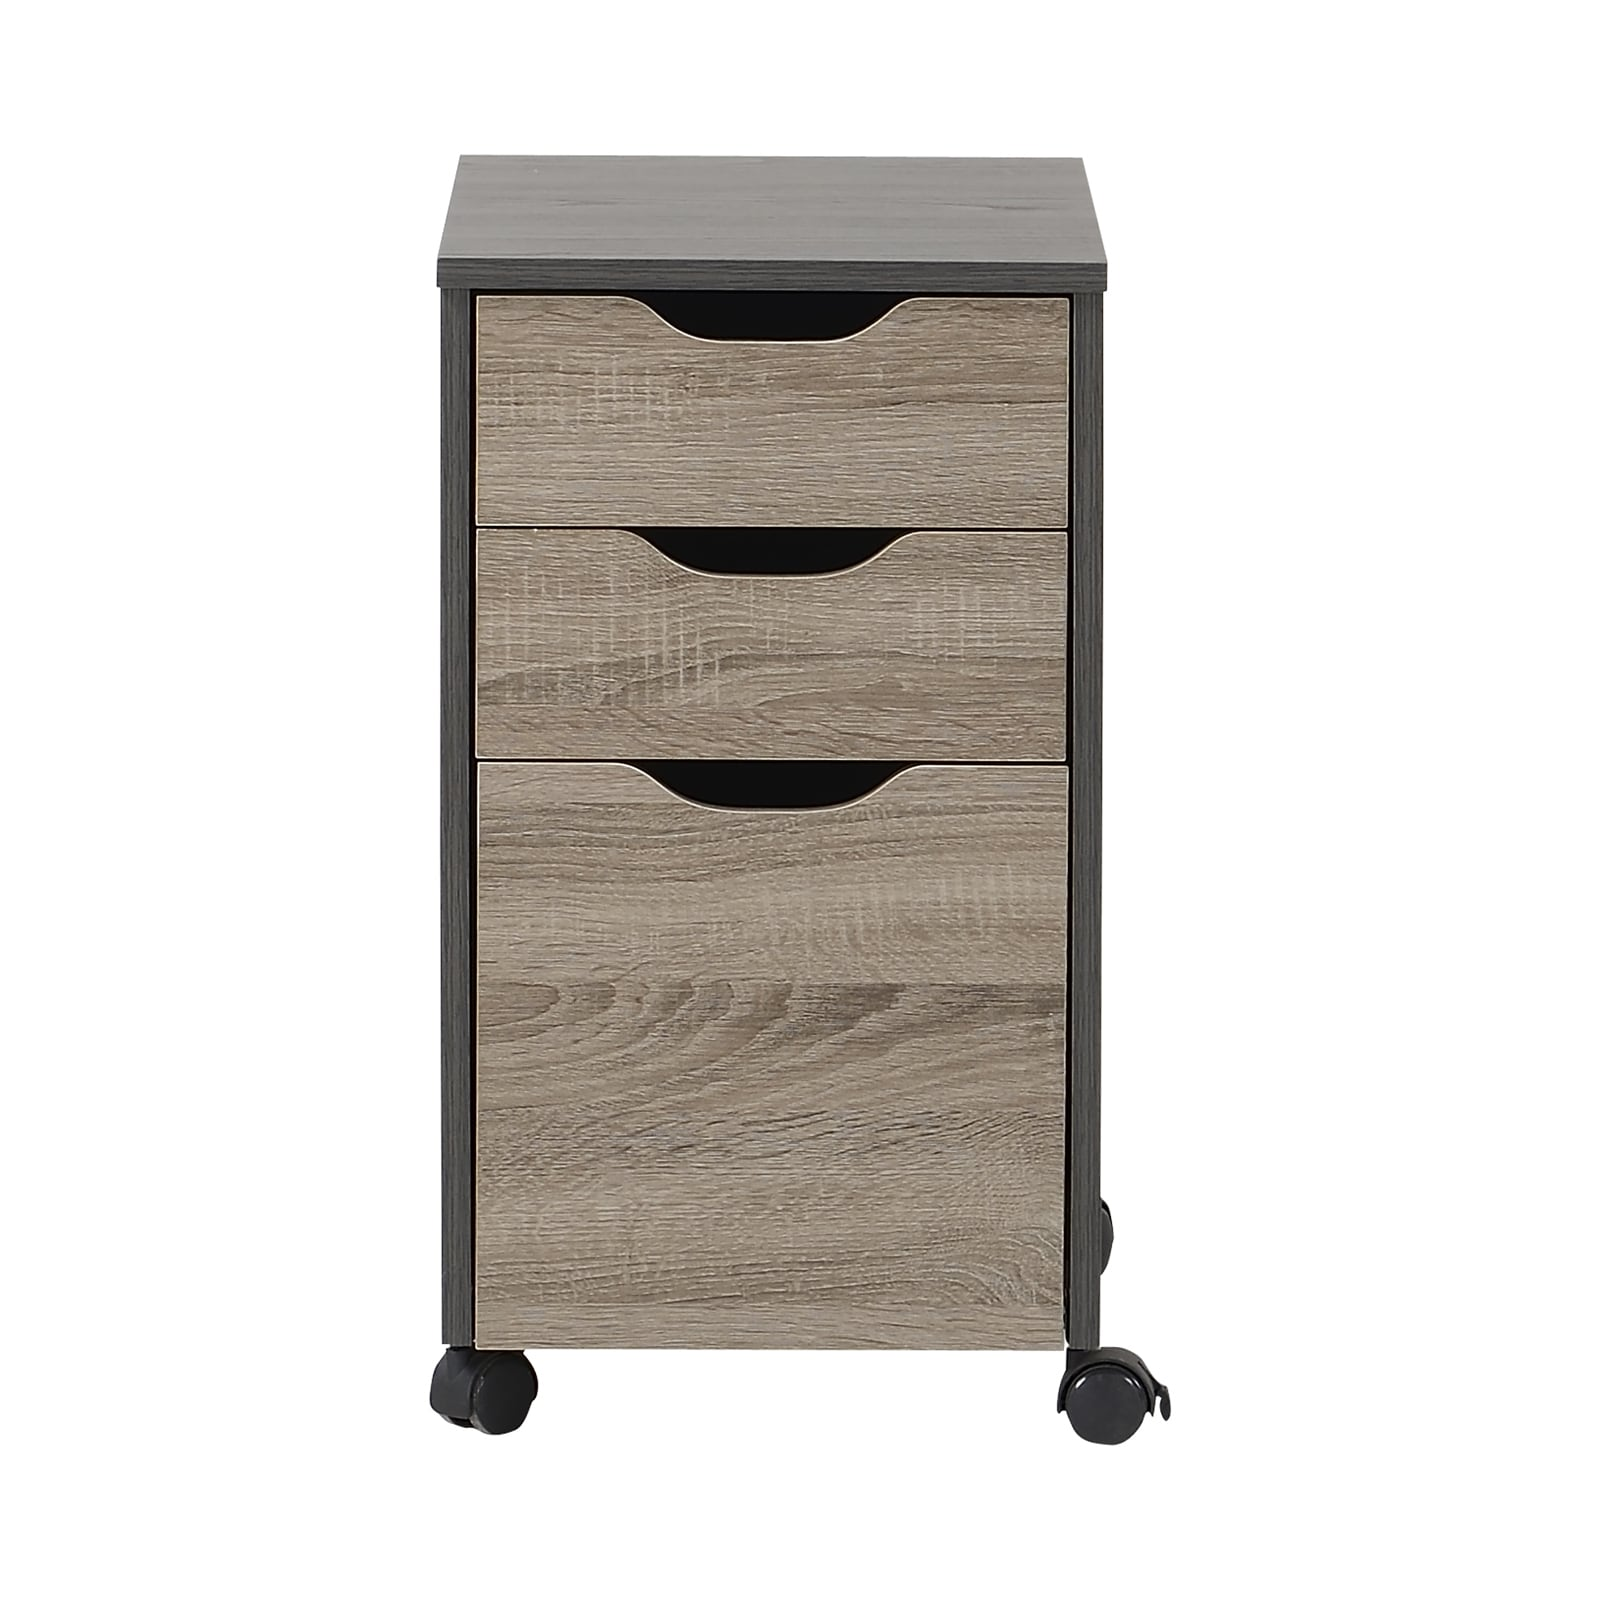 Homestar Reclaimed Wood 3 Drawer Filing Cabinet Free Shipping Today 13154854